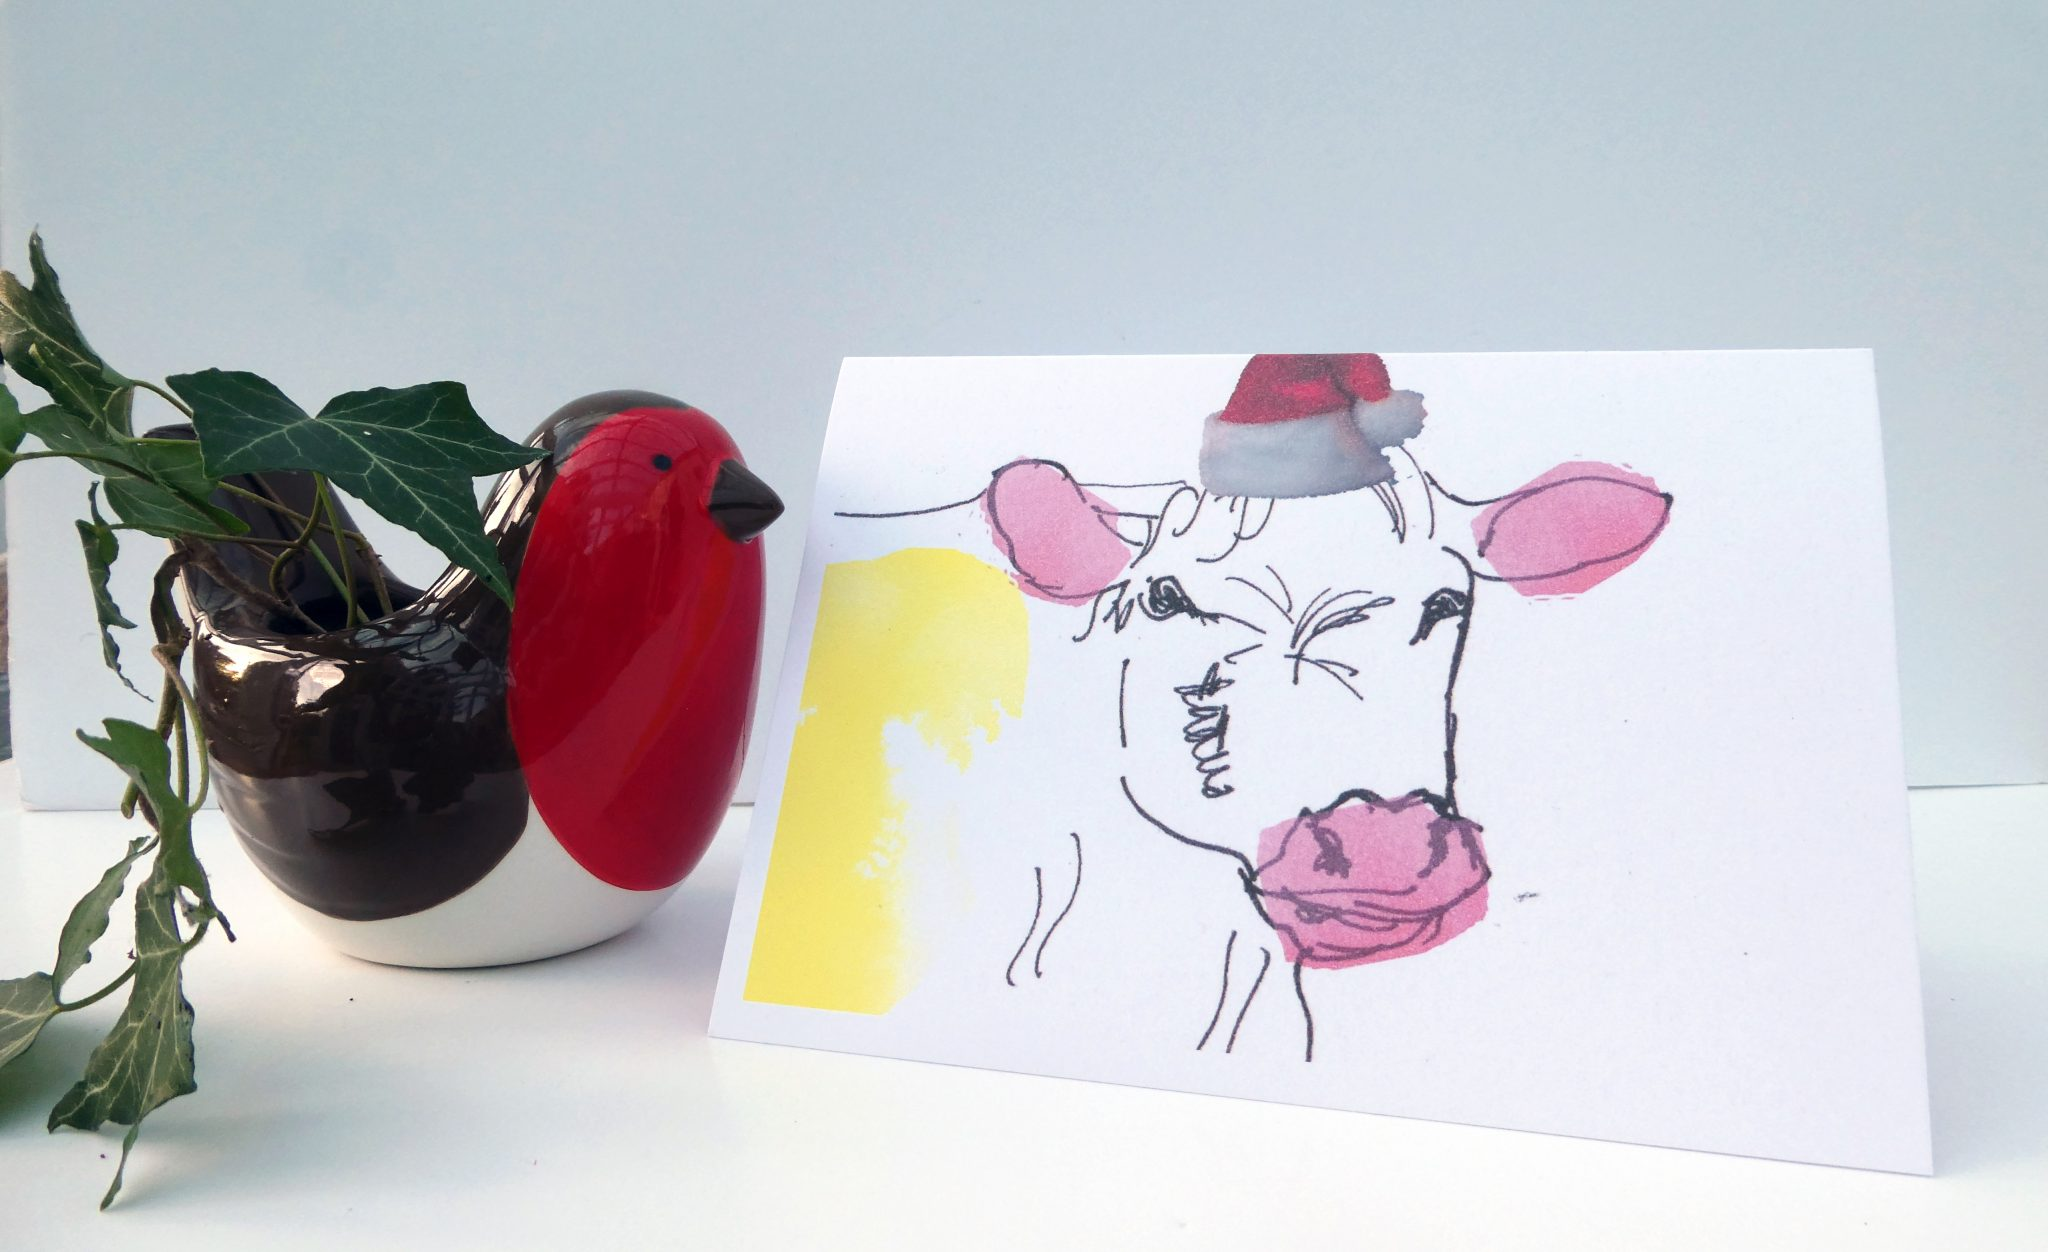 Cow in a party hat, cow card for Christmas, blank cow card for Xmas, festive funny cow card